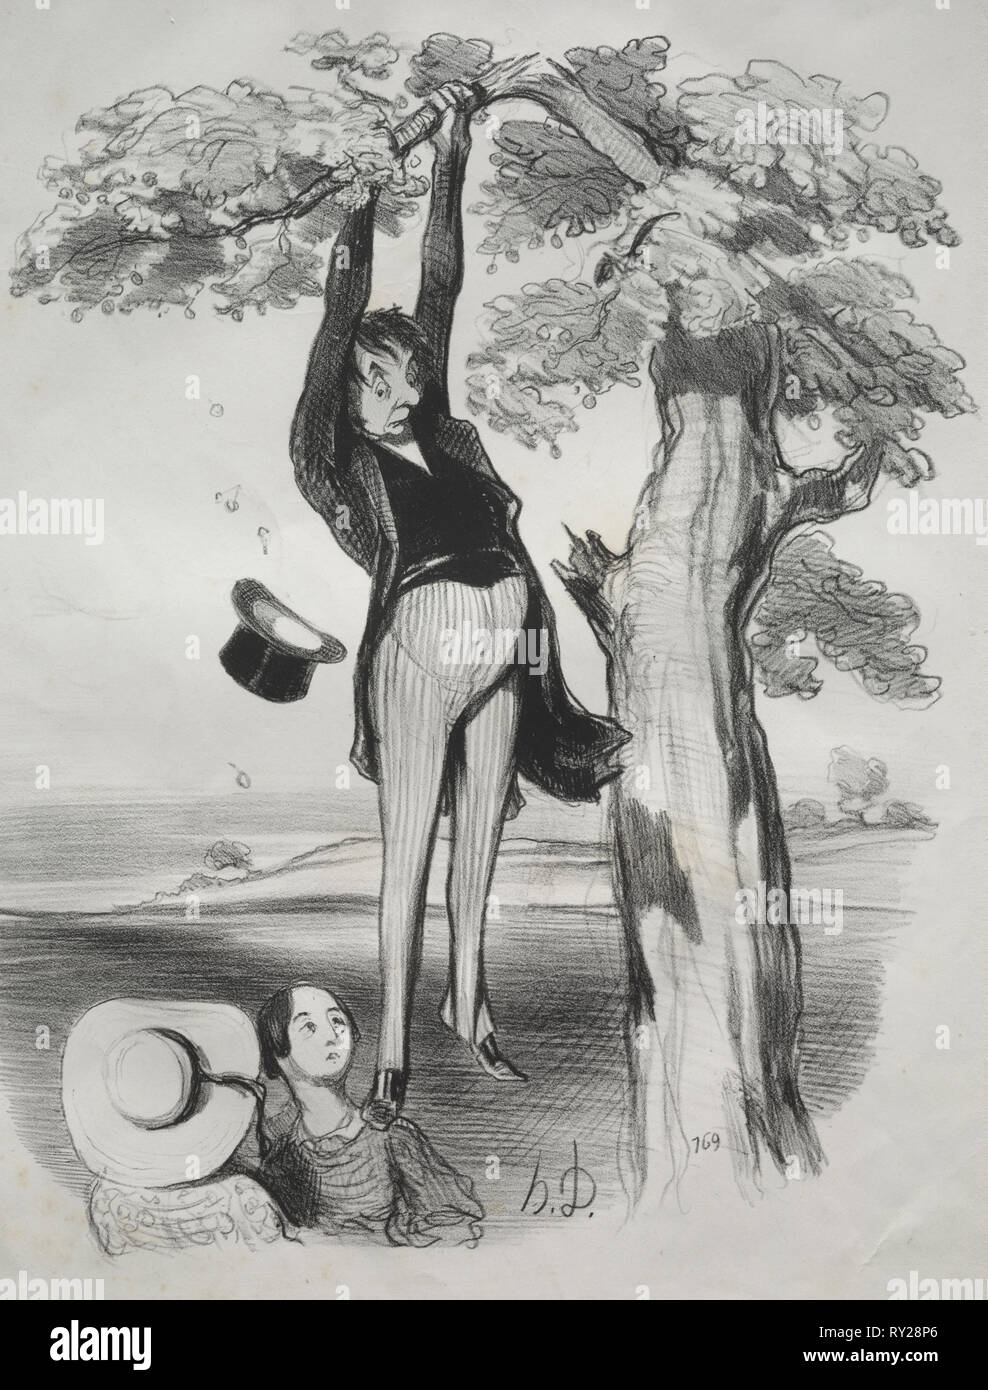 published in le Charivari (no du 29 mai 1845): Pastorales, plate 2: The Hazards of shaking a plum tree too vigorously (when one is a grown man), 1845. Honoré Daumier (French, 1808-1879). Lithograph; sheet: 35.6 x 27.3 cm (14 x 10 3/4 in - Stock Image